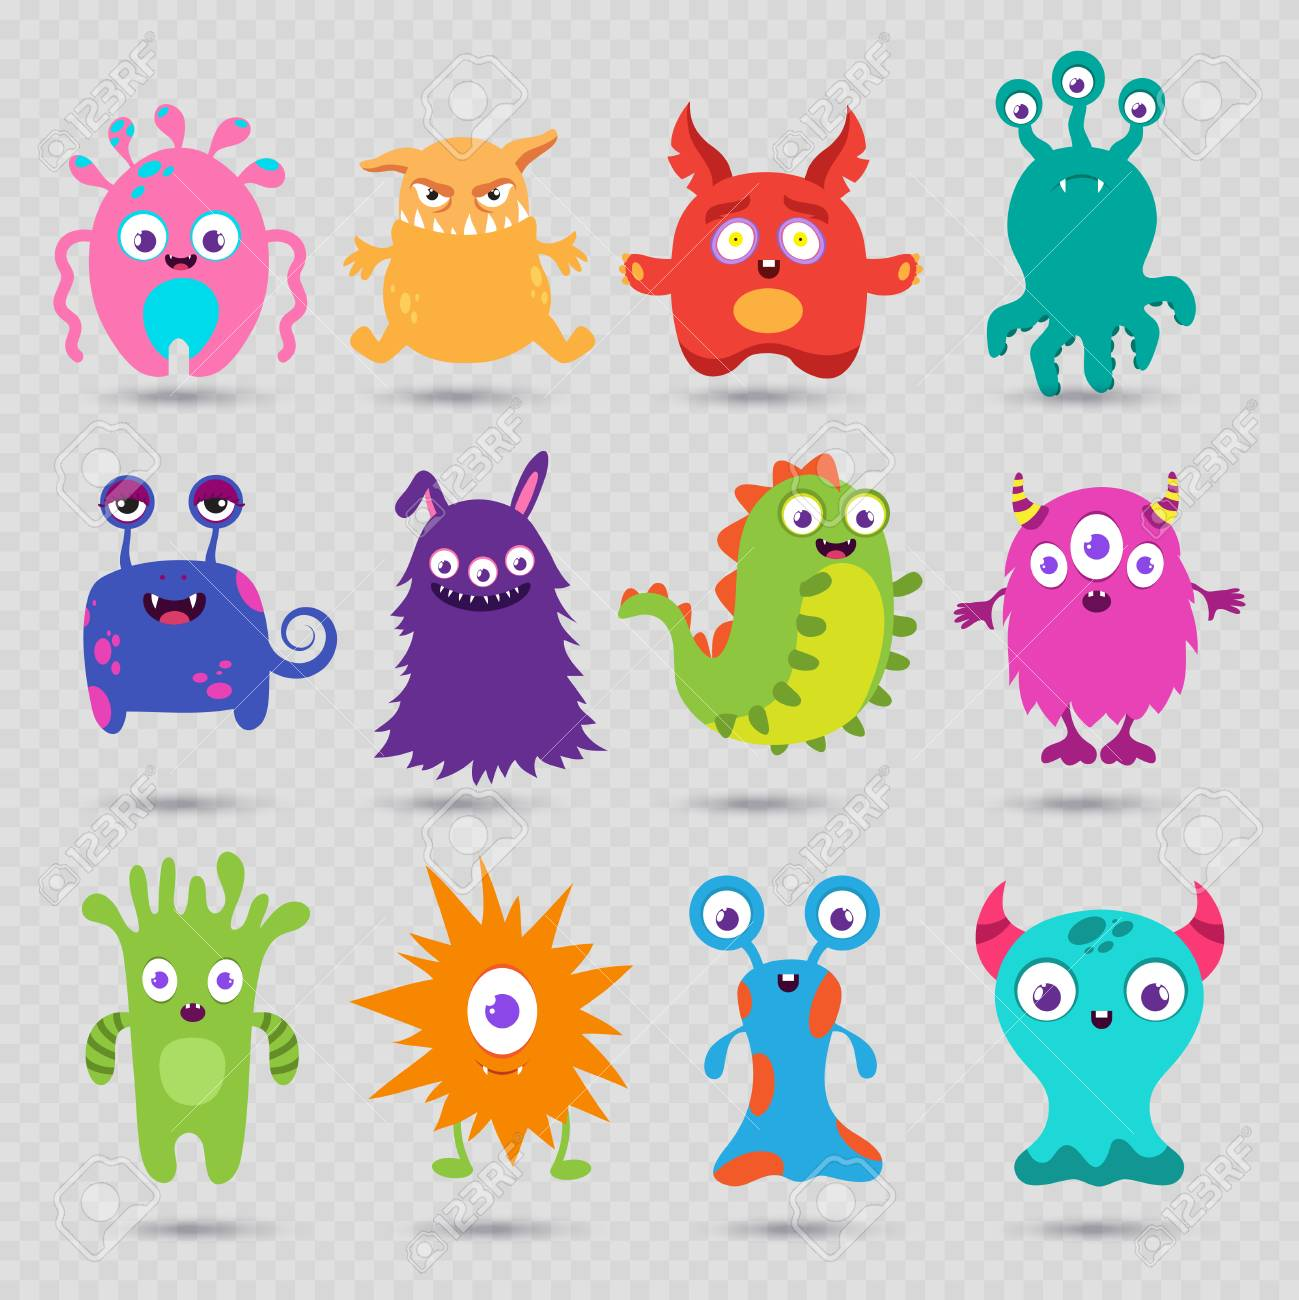 Cute Cartoon Baby Monsters Vector Isolated On Transparent Background